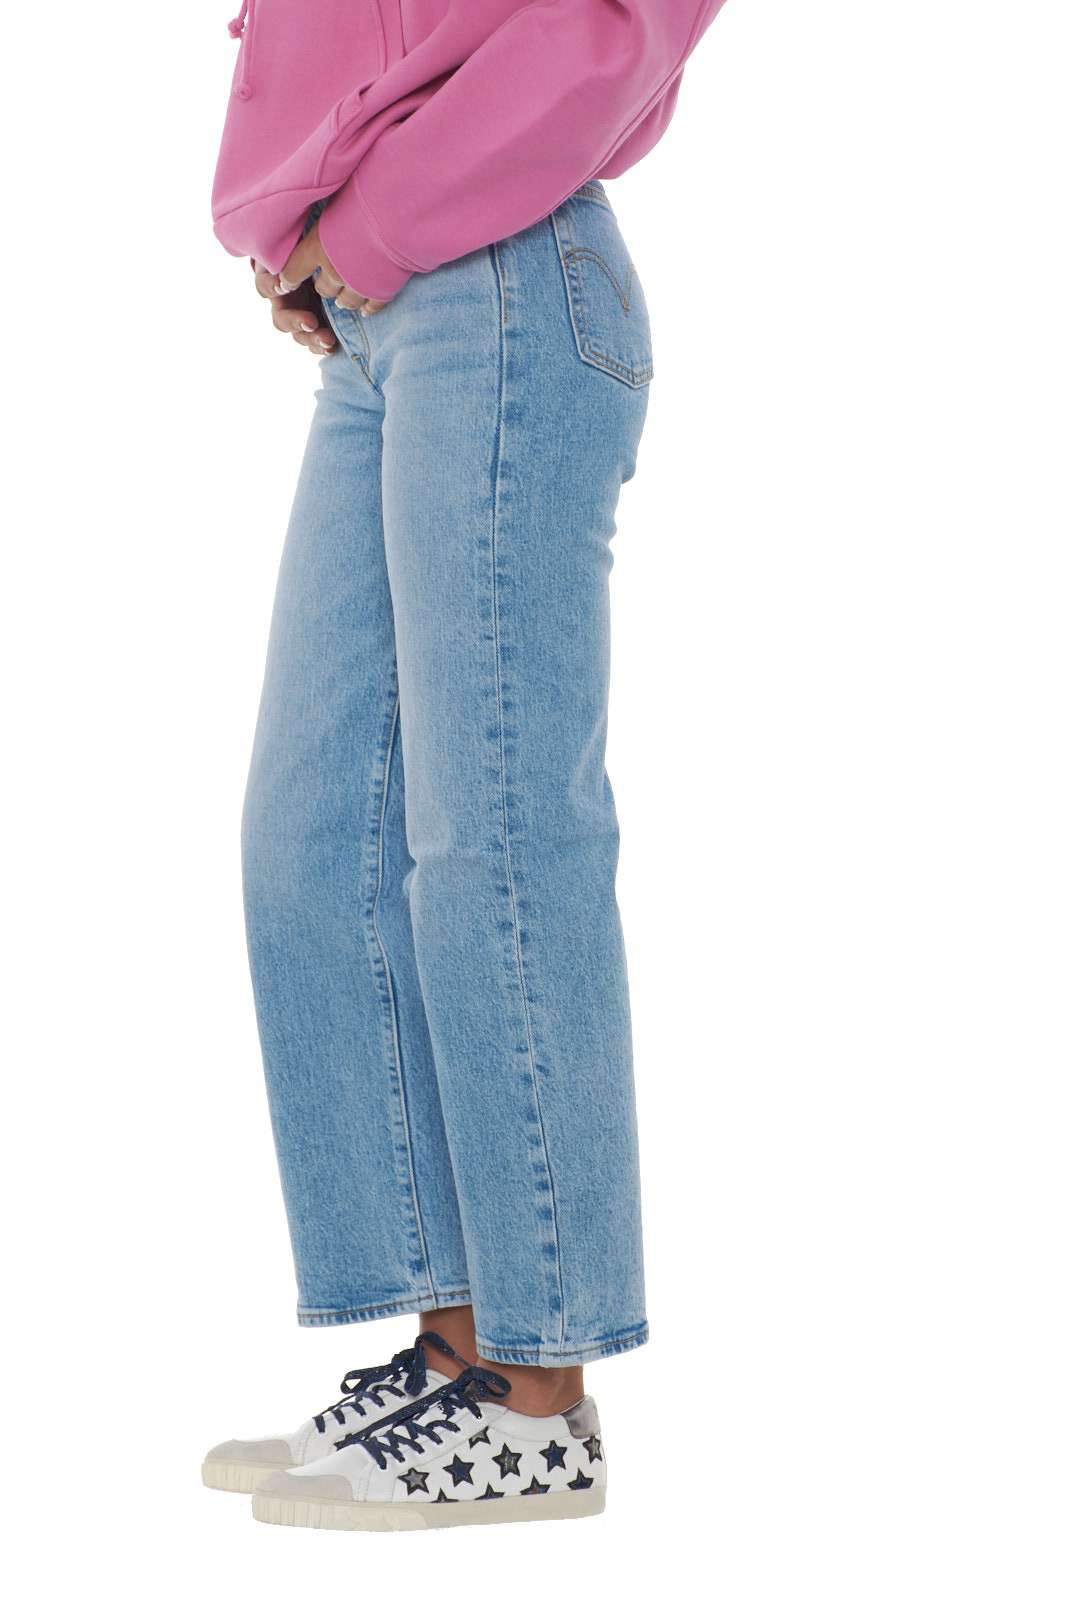 https://www.parmax.com/media/catalog/product/a/i/AI-outlet_parmax-denim-donna-Levis-72693%200023-B.jpg